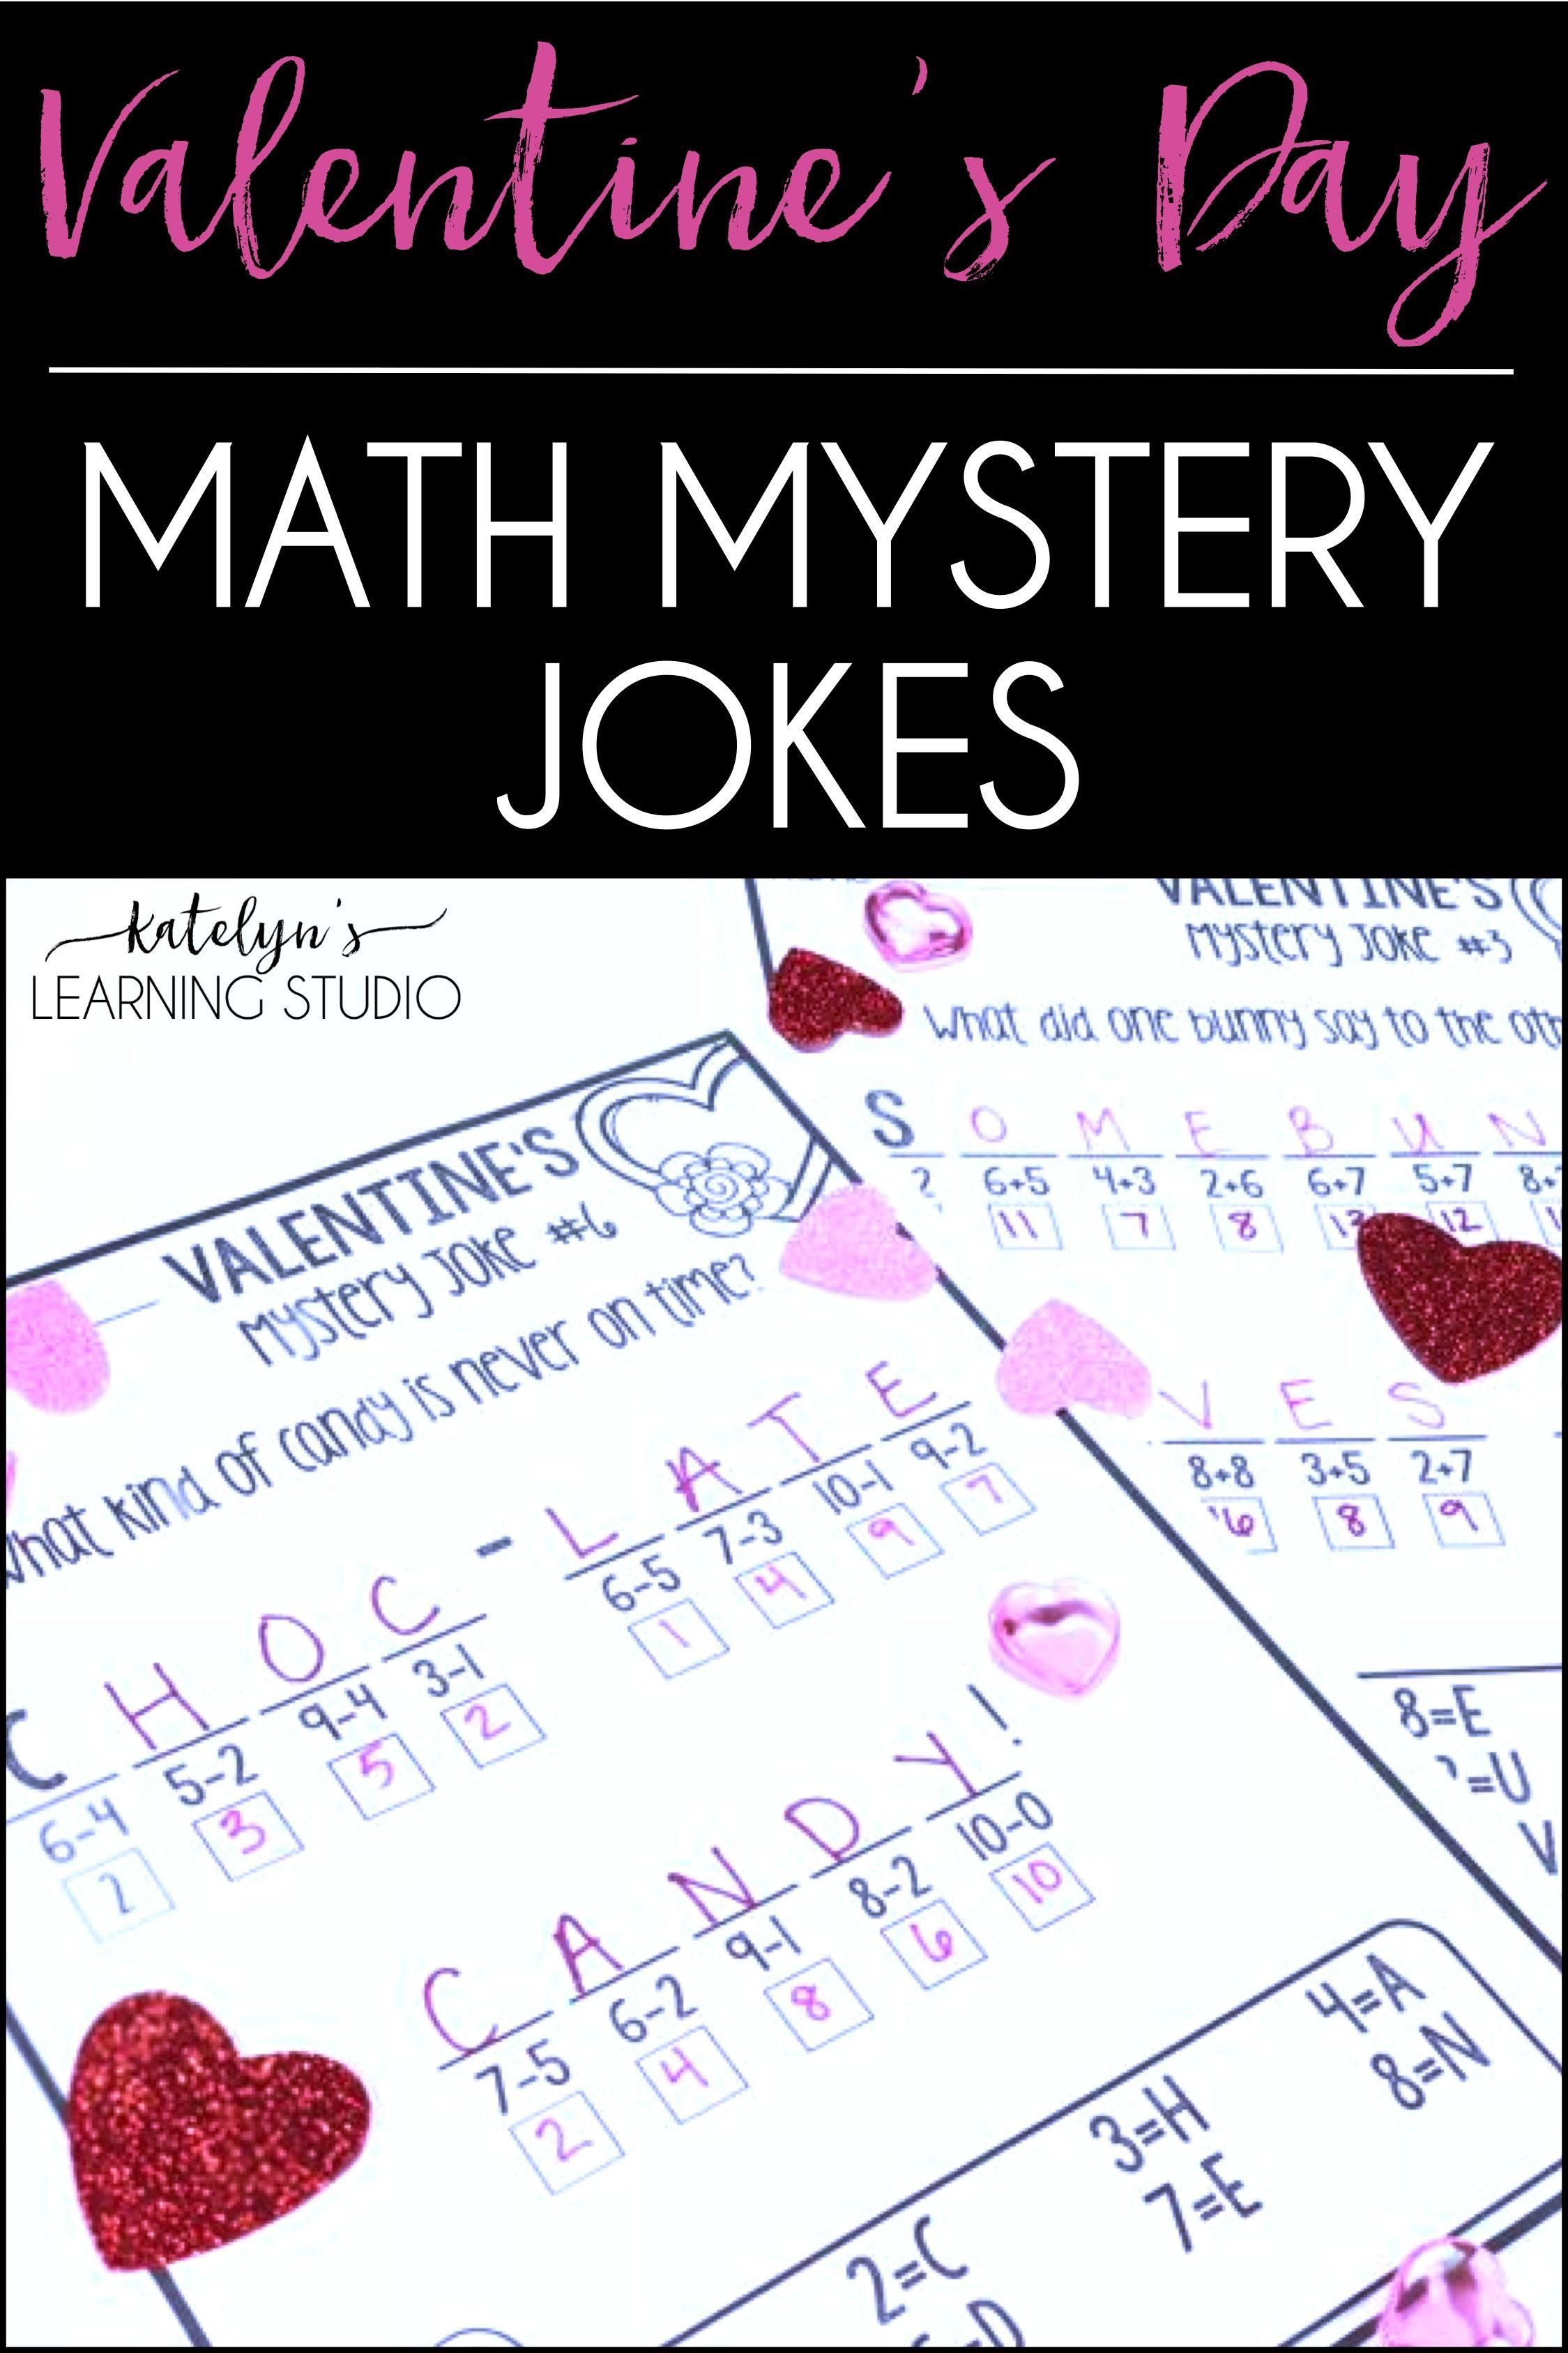 38 Math Worksheet Jokes In 2020 In Kindergarten